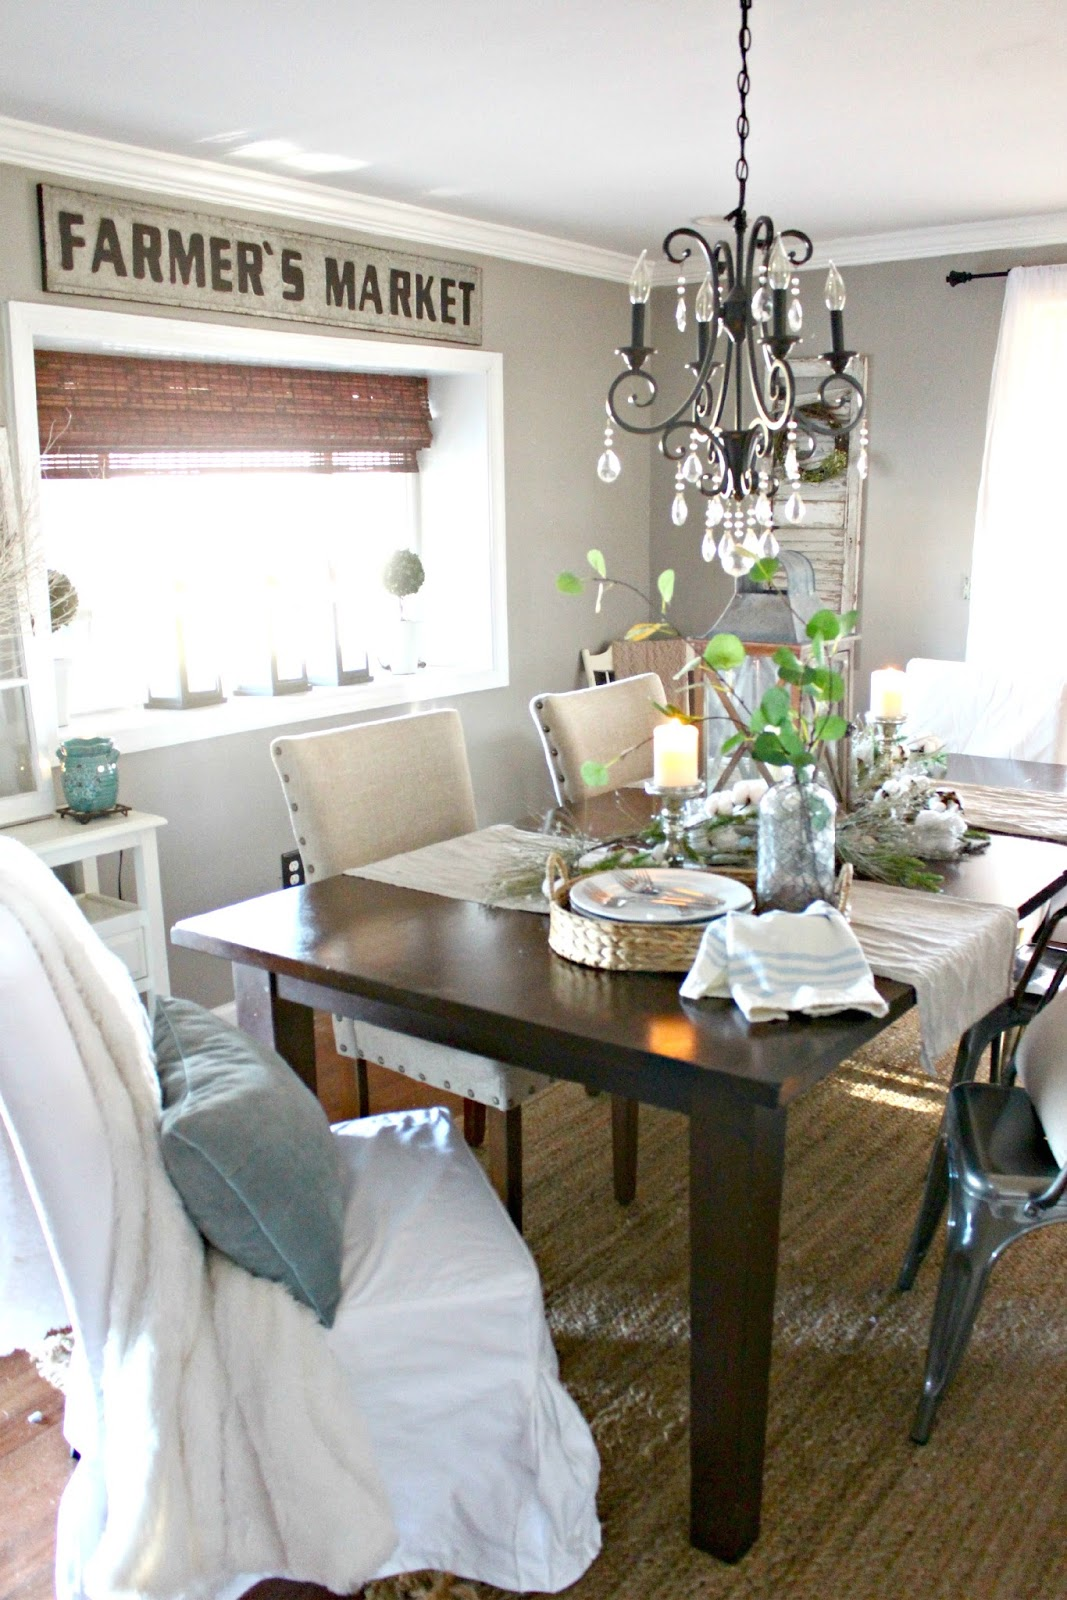 One Of The Things I Did To Achieve The Farmhouse Style Look I Loved So Much Was Adding Rugs To My Spaces I Especially Loved Jute Rugs And The Texture They